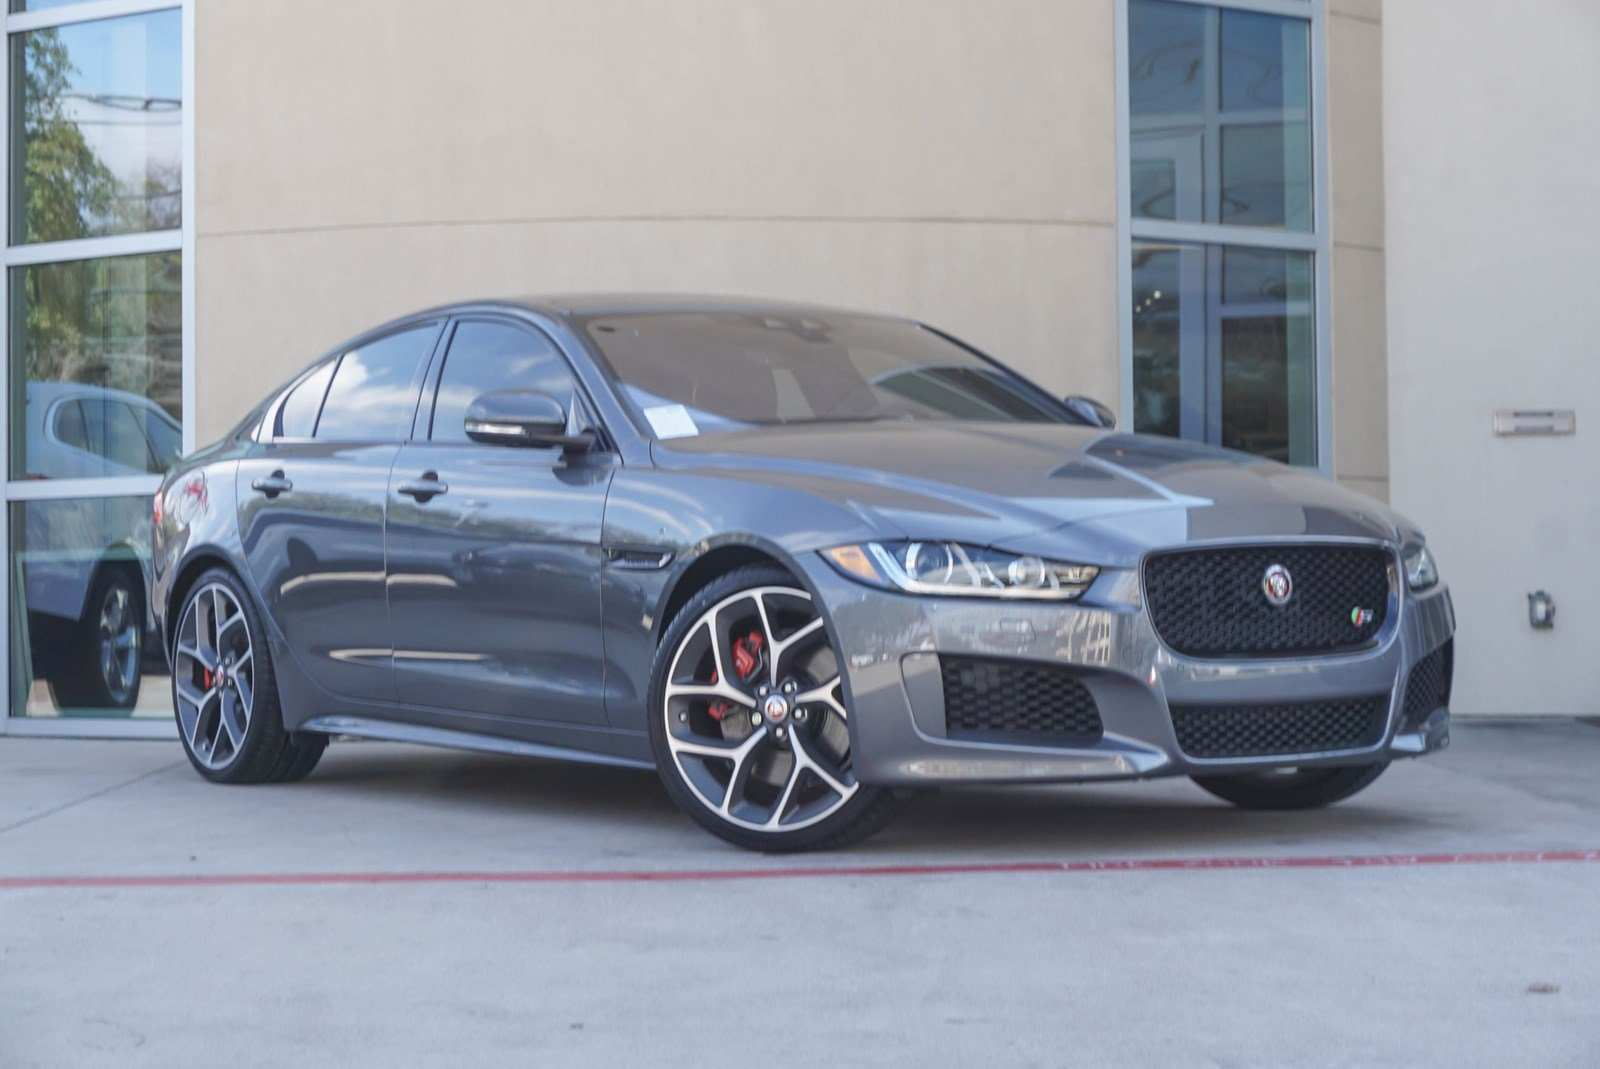 31 All New Jaguar Xe 2019 Price And Review